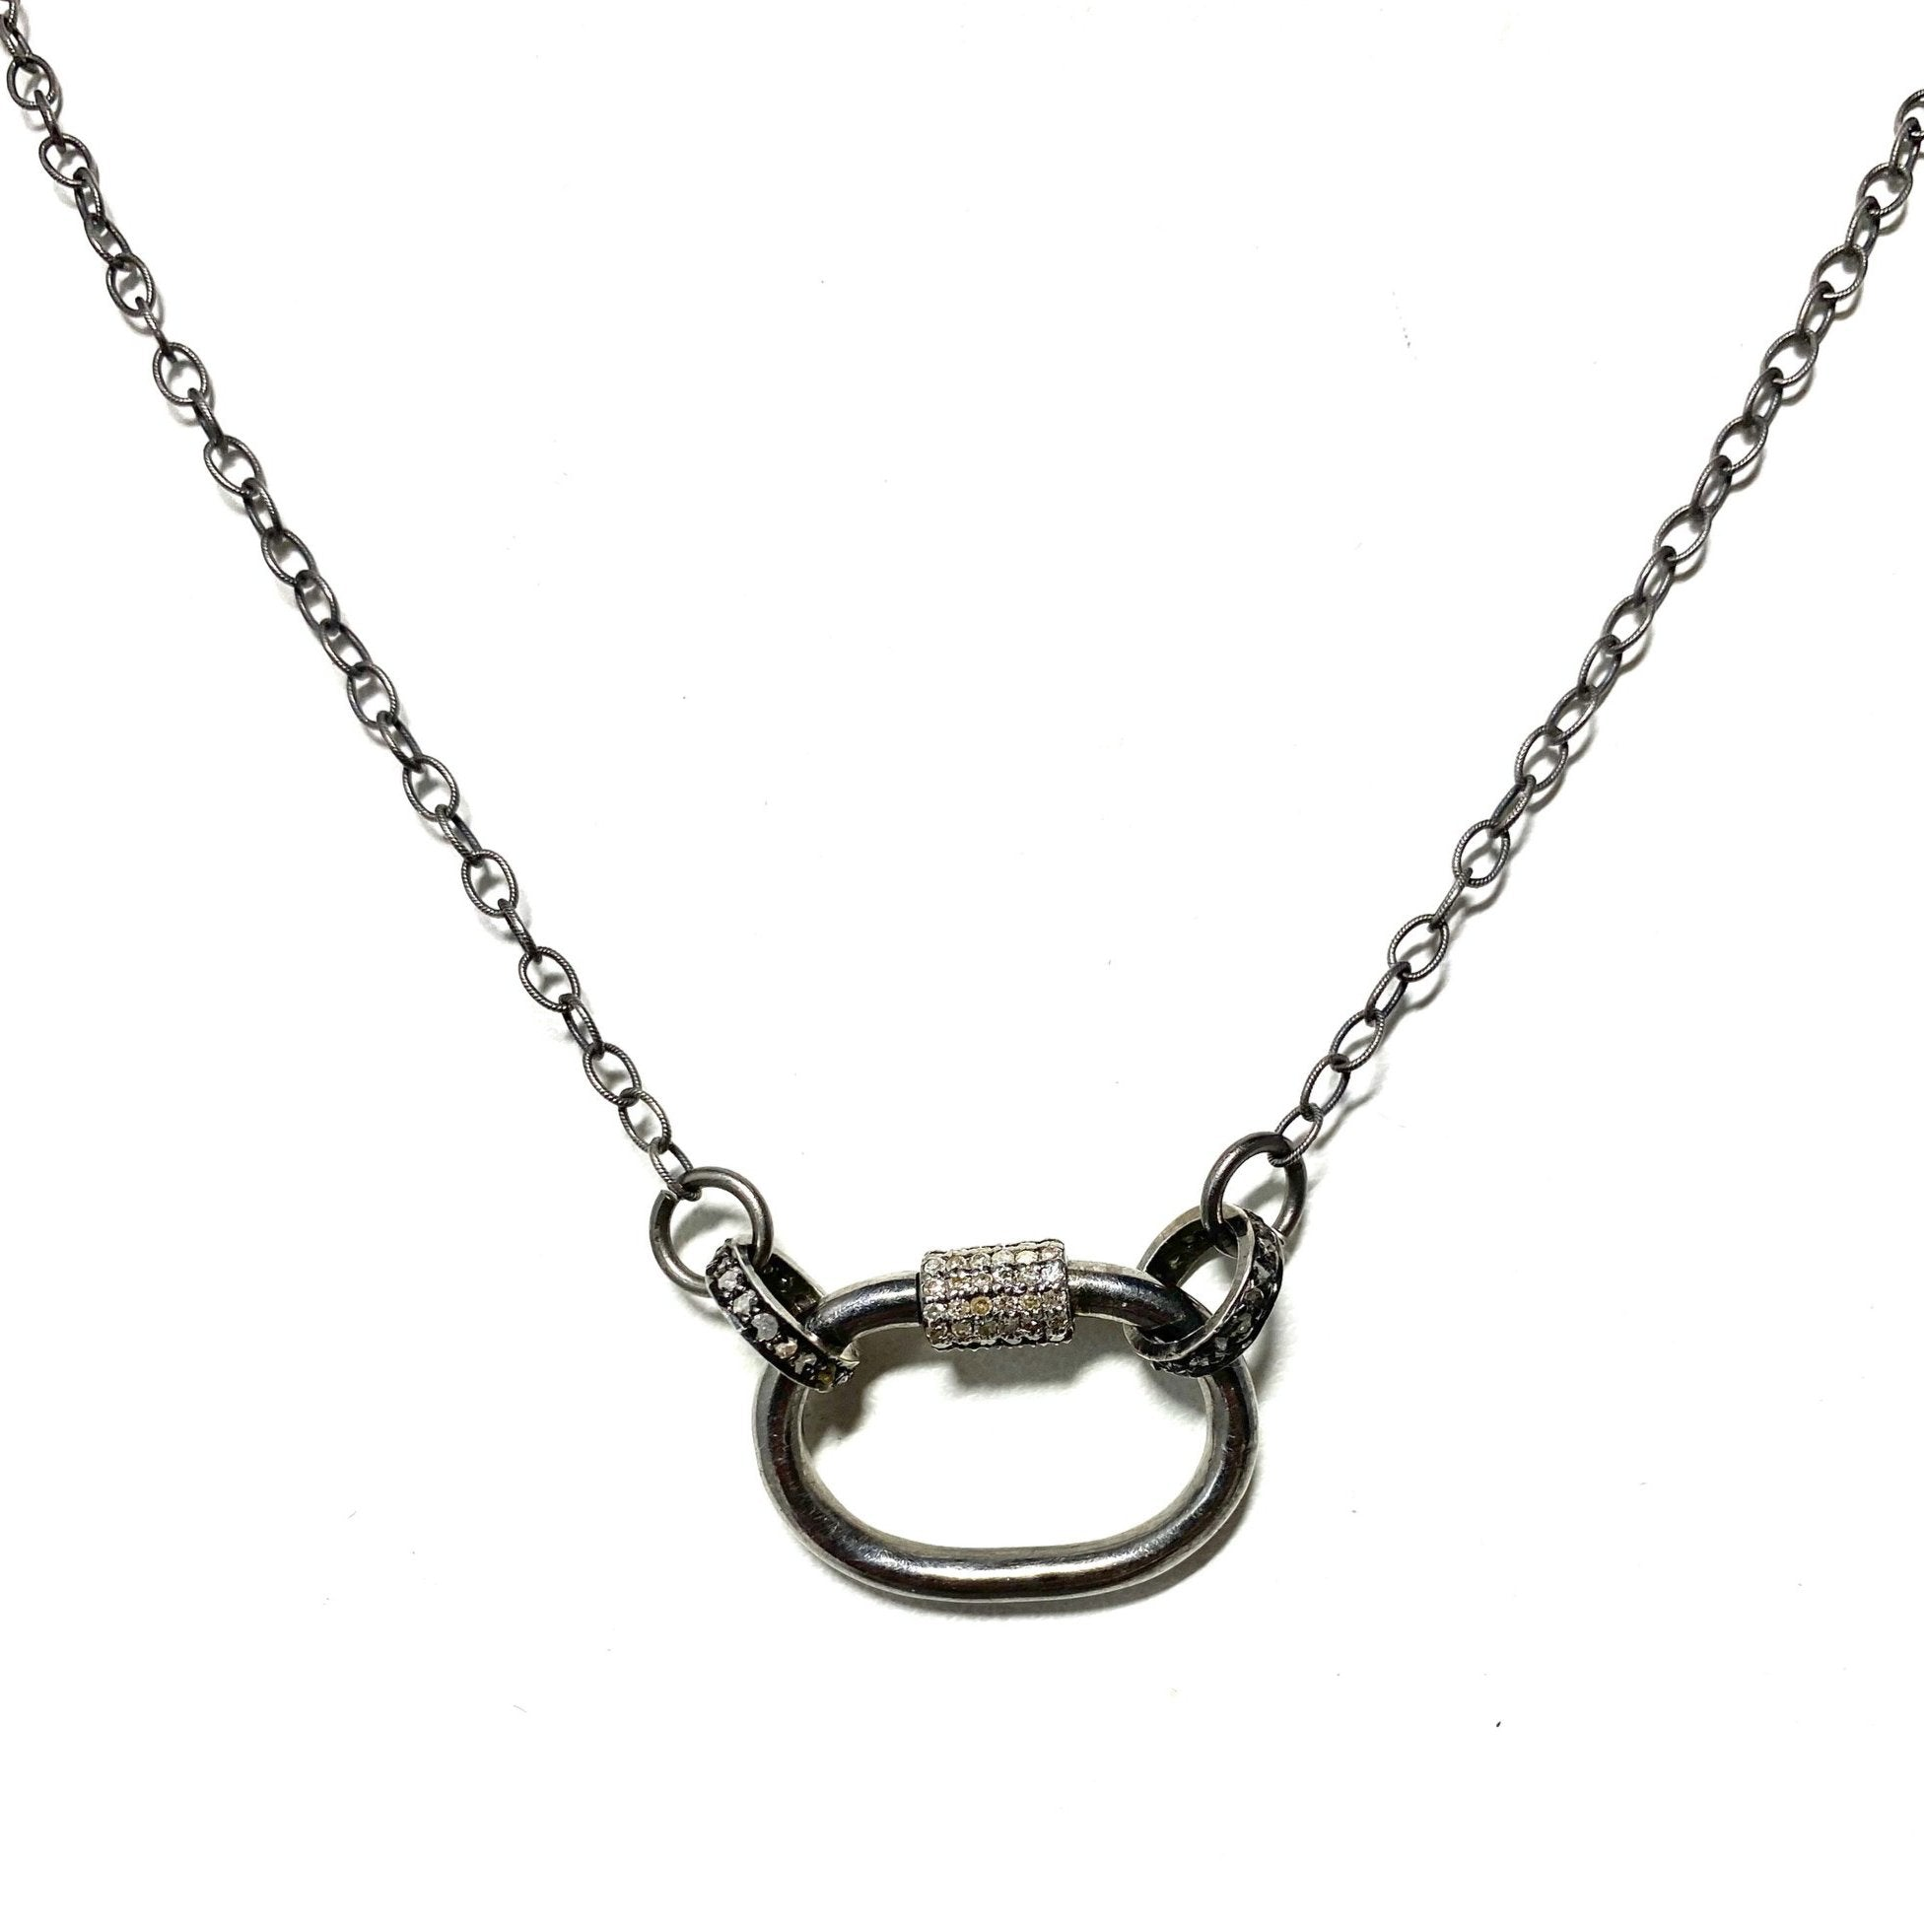 S.Row Designs Sterling Silver and Diamond Lock Necklace